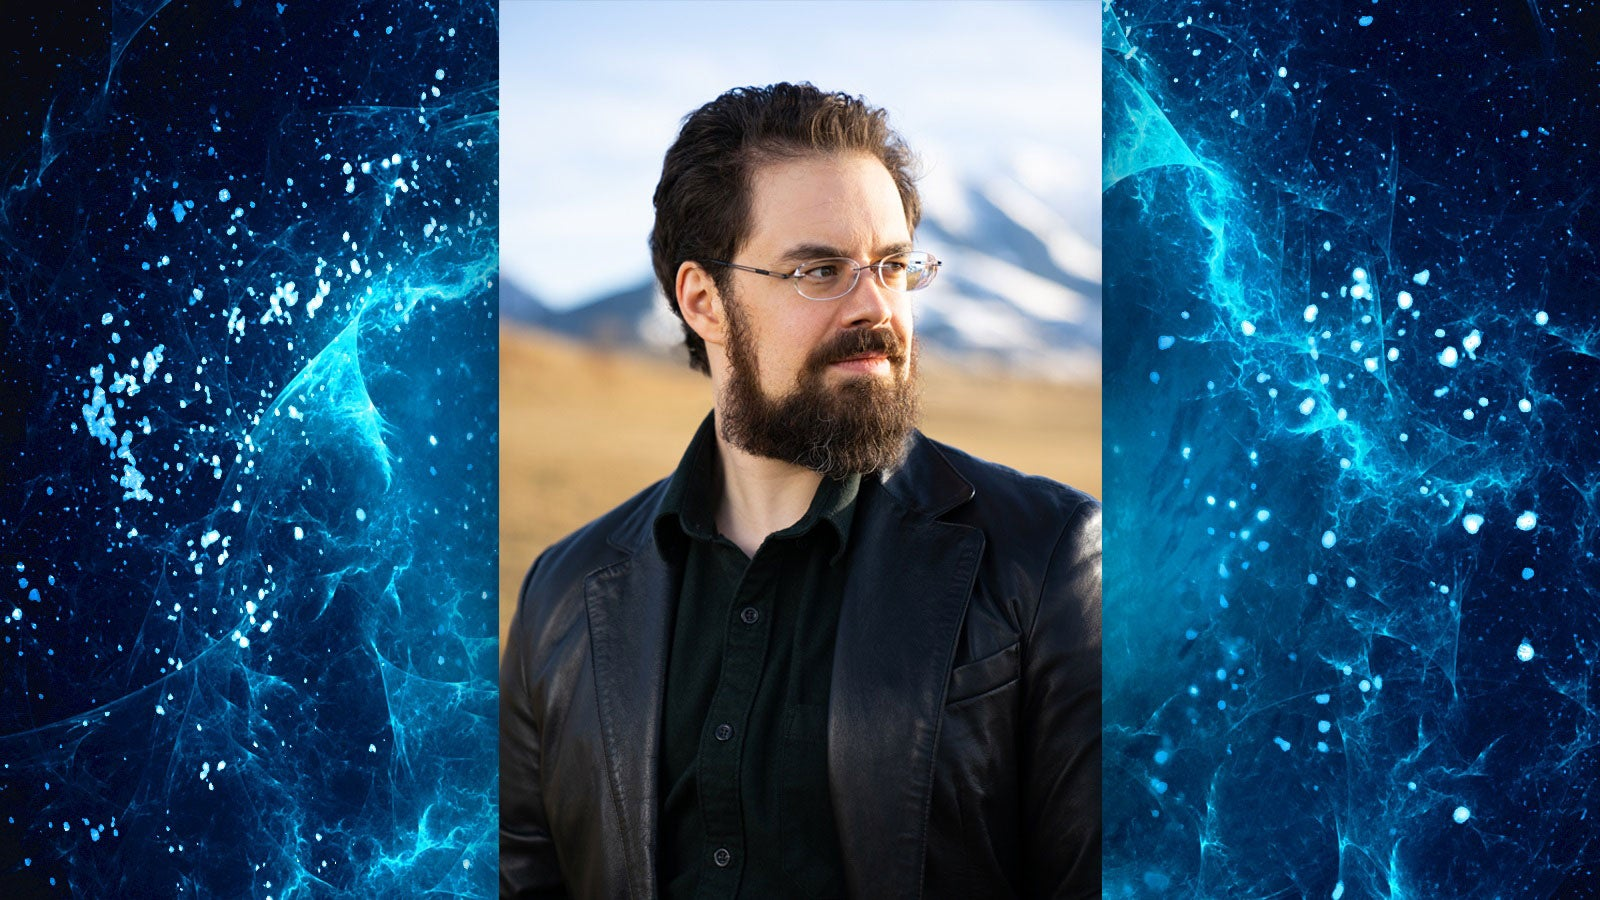 Photo of Christopher Paolini against a blue space background